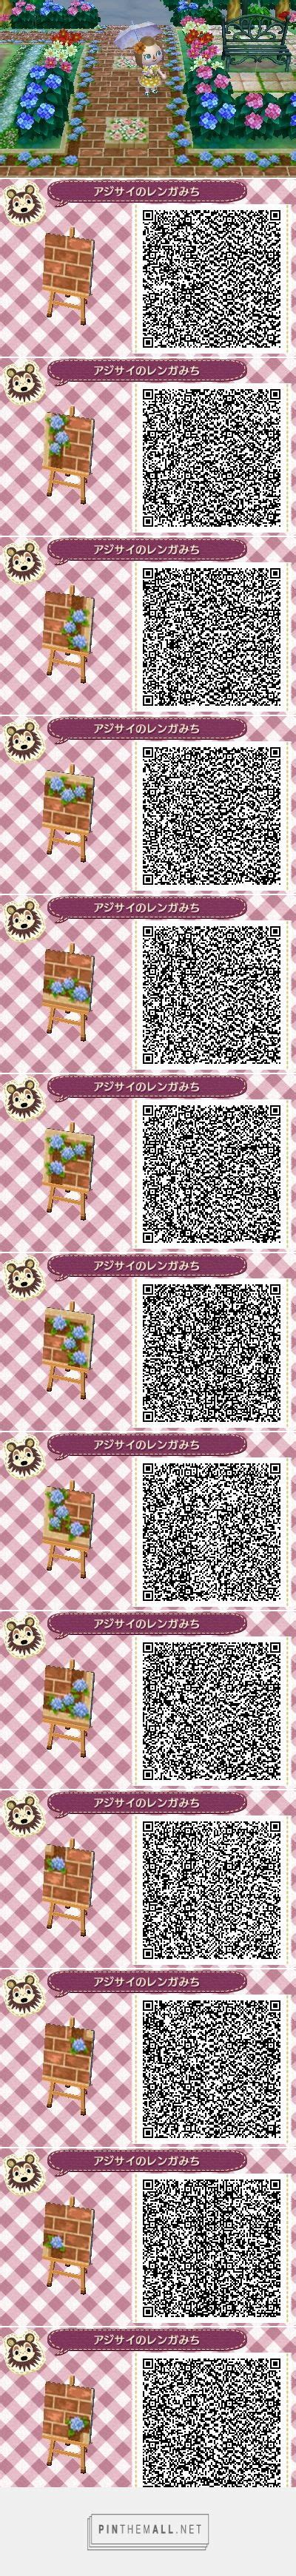 acnl spring colors 125 best images about animal crossing on pinterest